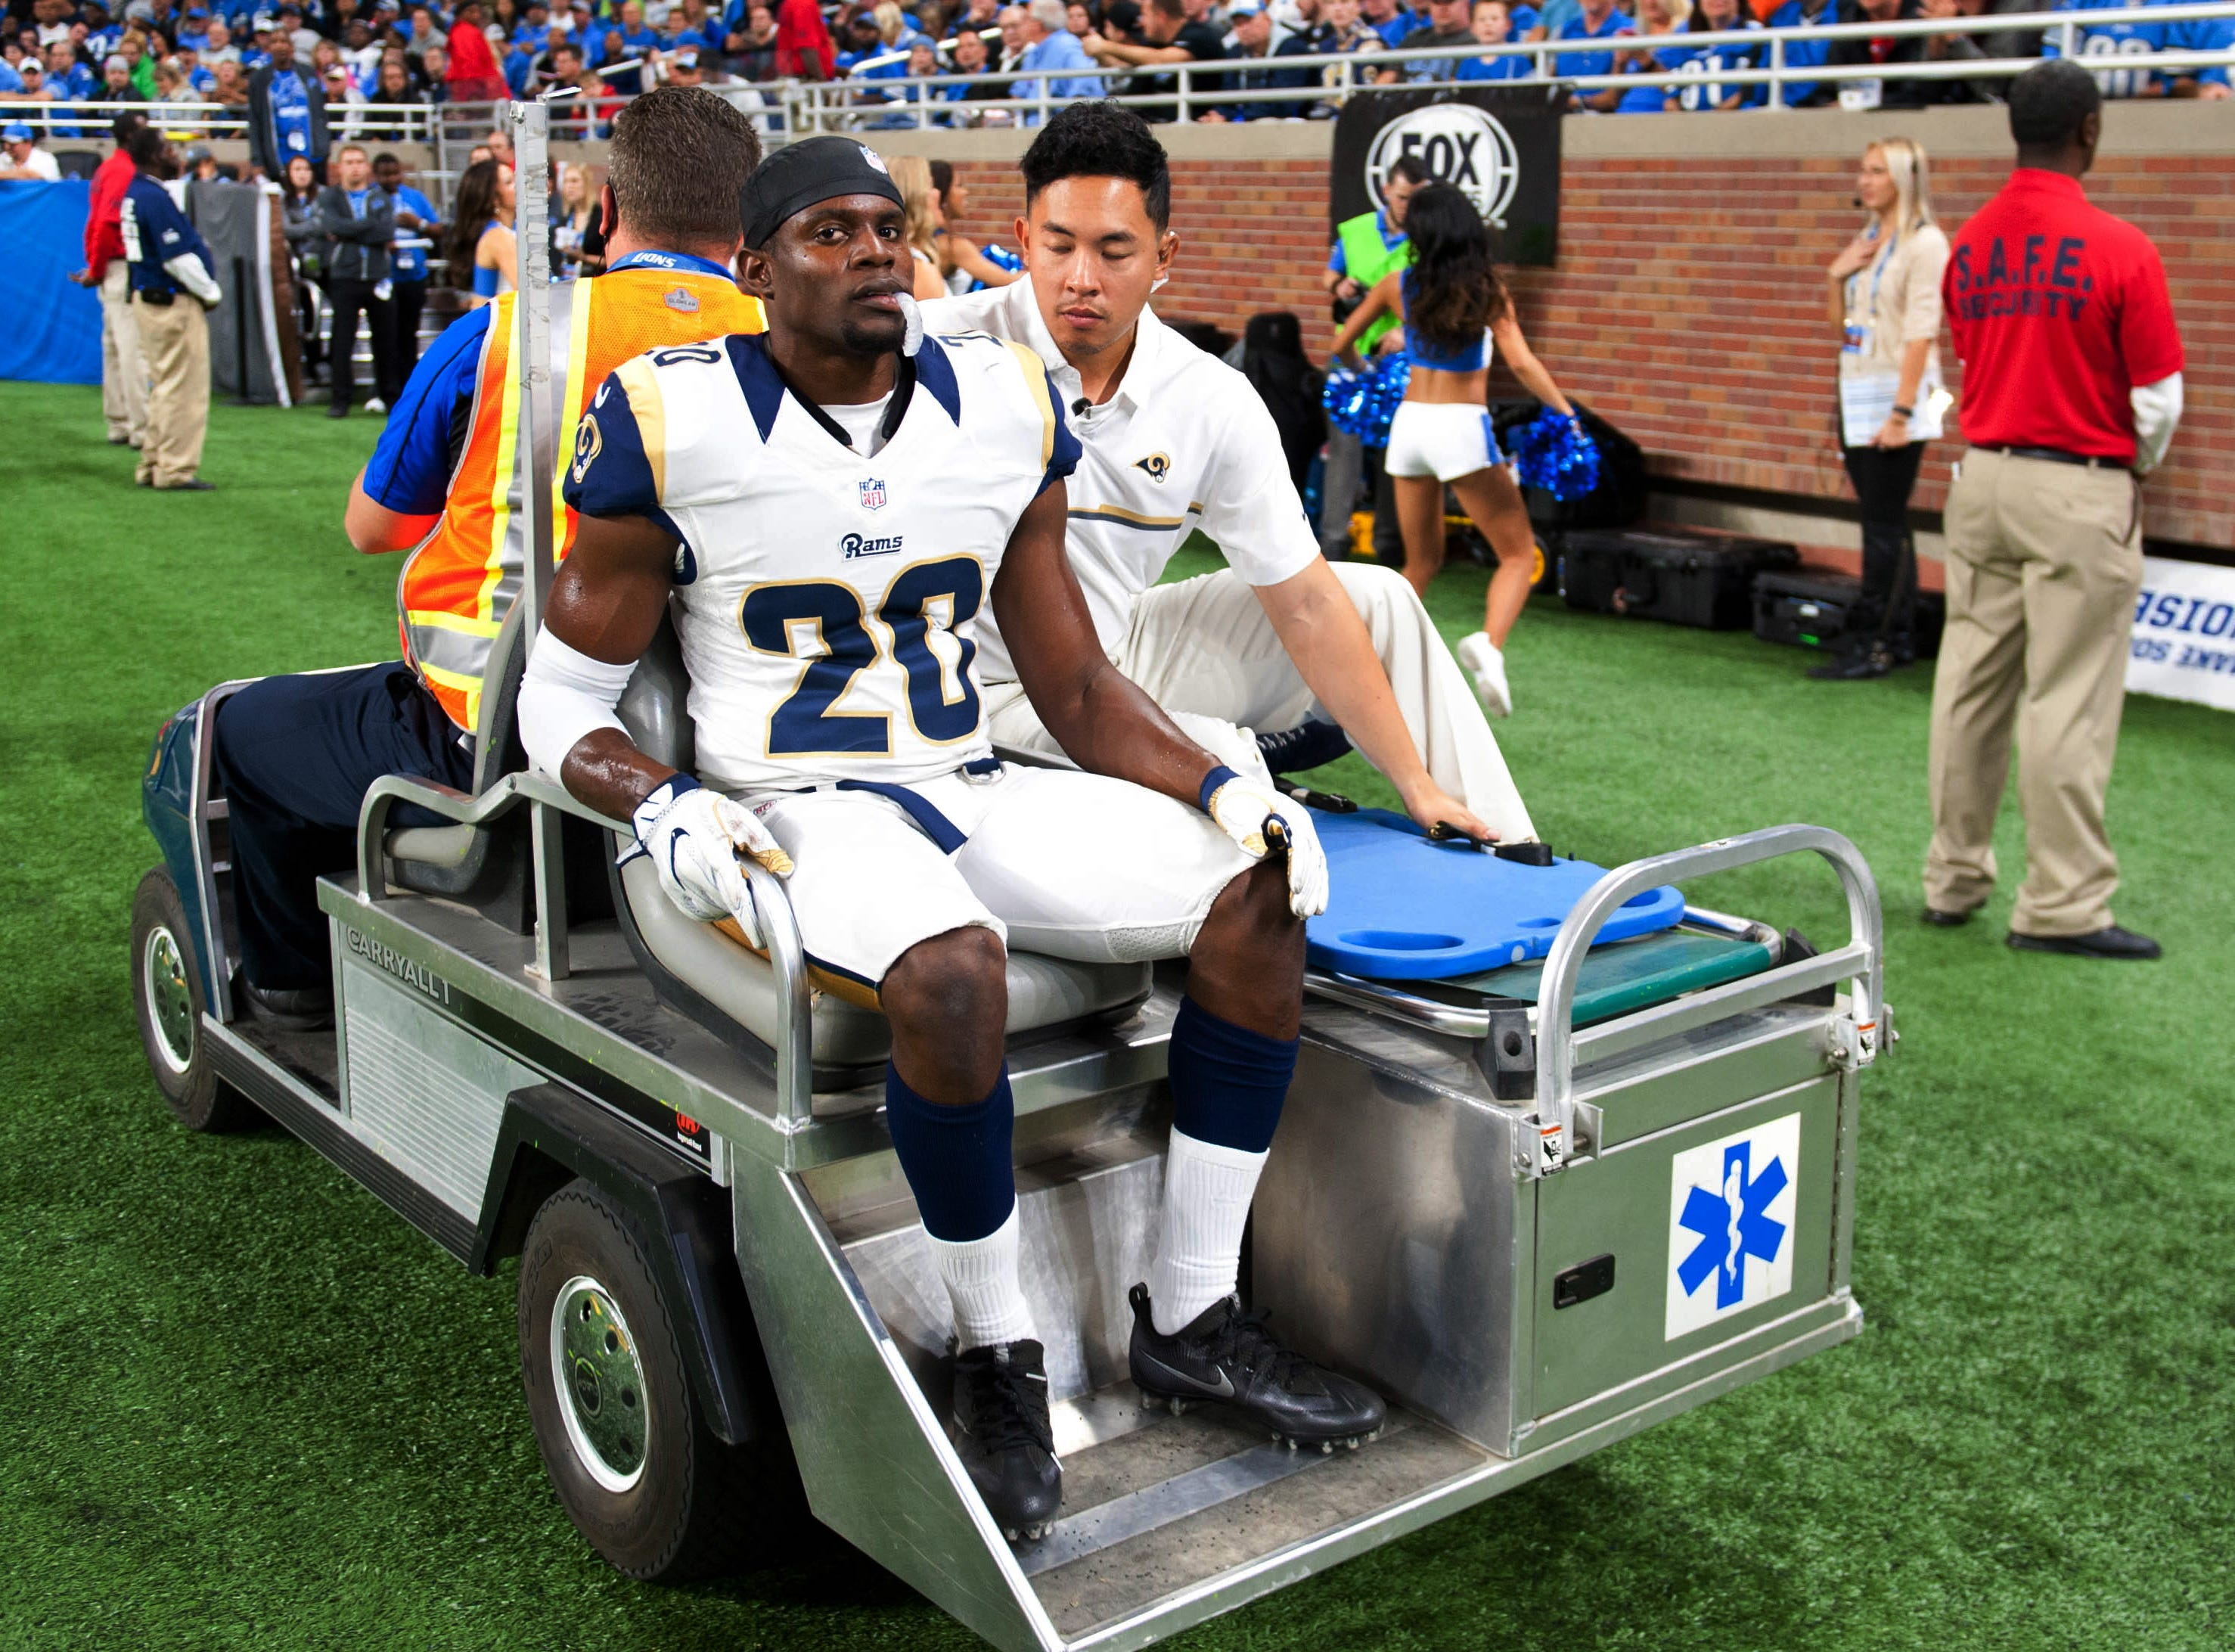 Oct 16, 2016; Detroit, MI, USA; Los Angeles Rams cornerback Lamarcus Joyner (20) is carted off the field during the game against the Detroit Lions at Ford Field. Detroit won 31-28. Mandatory Credit: Tim Fuller-USA TODAY Sports